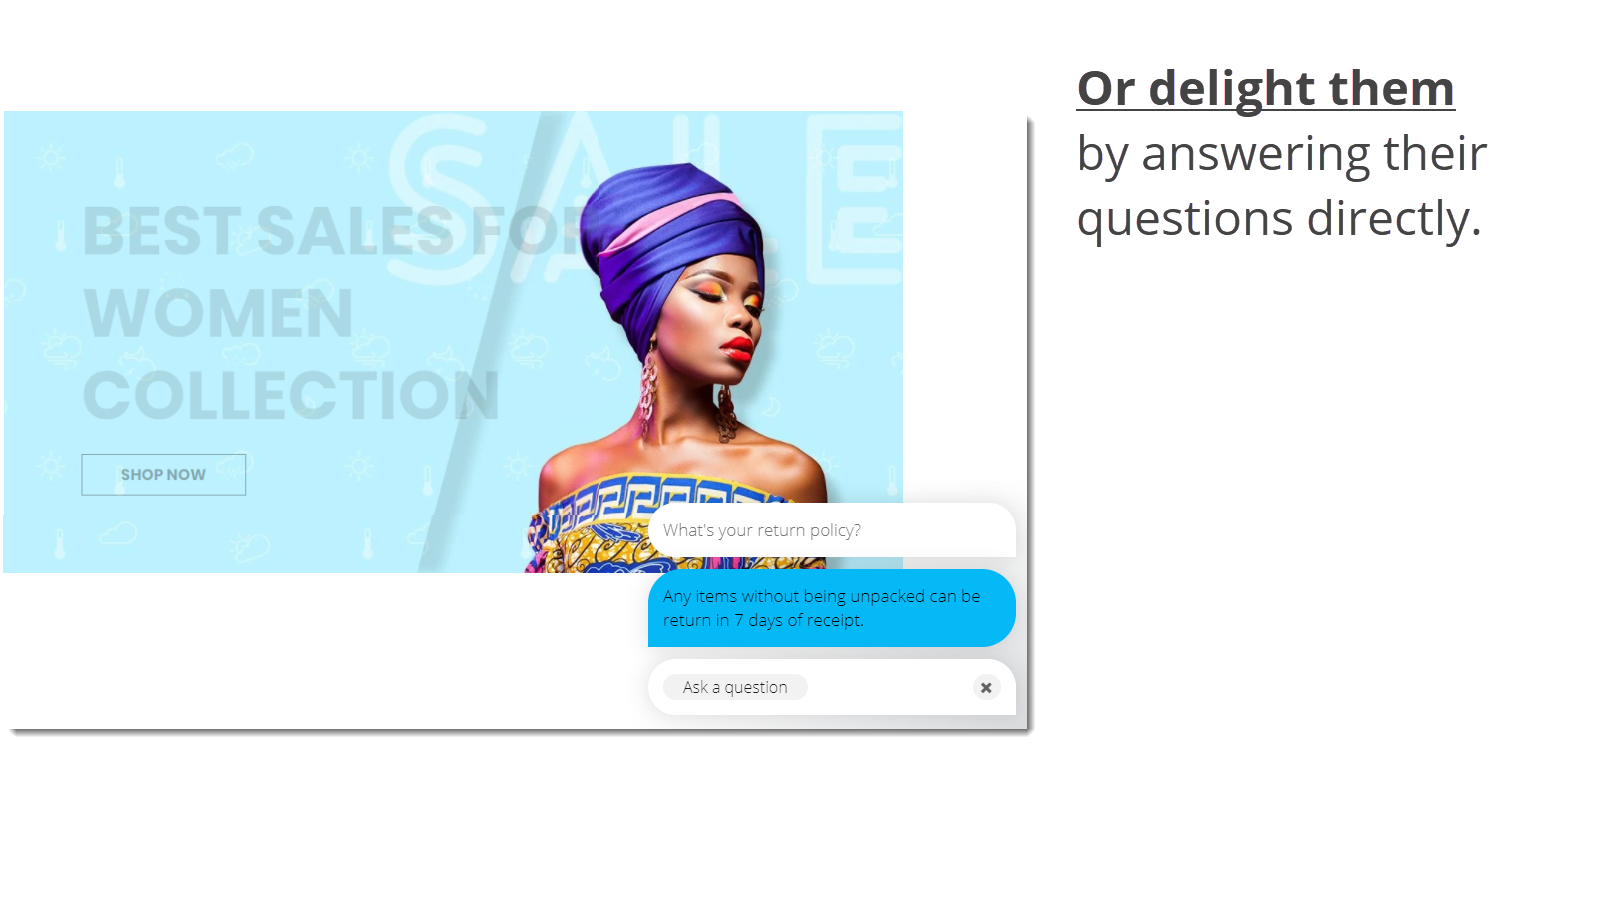 Or delight customers by answering their questions directly